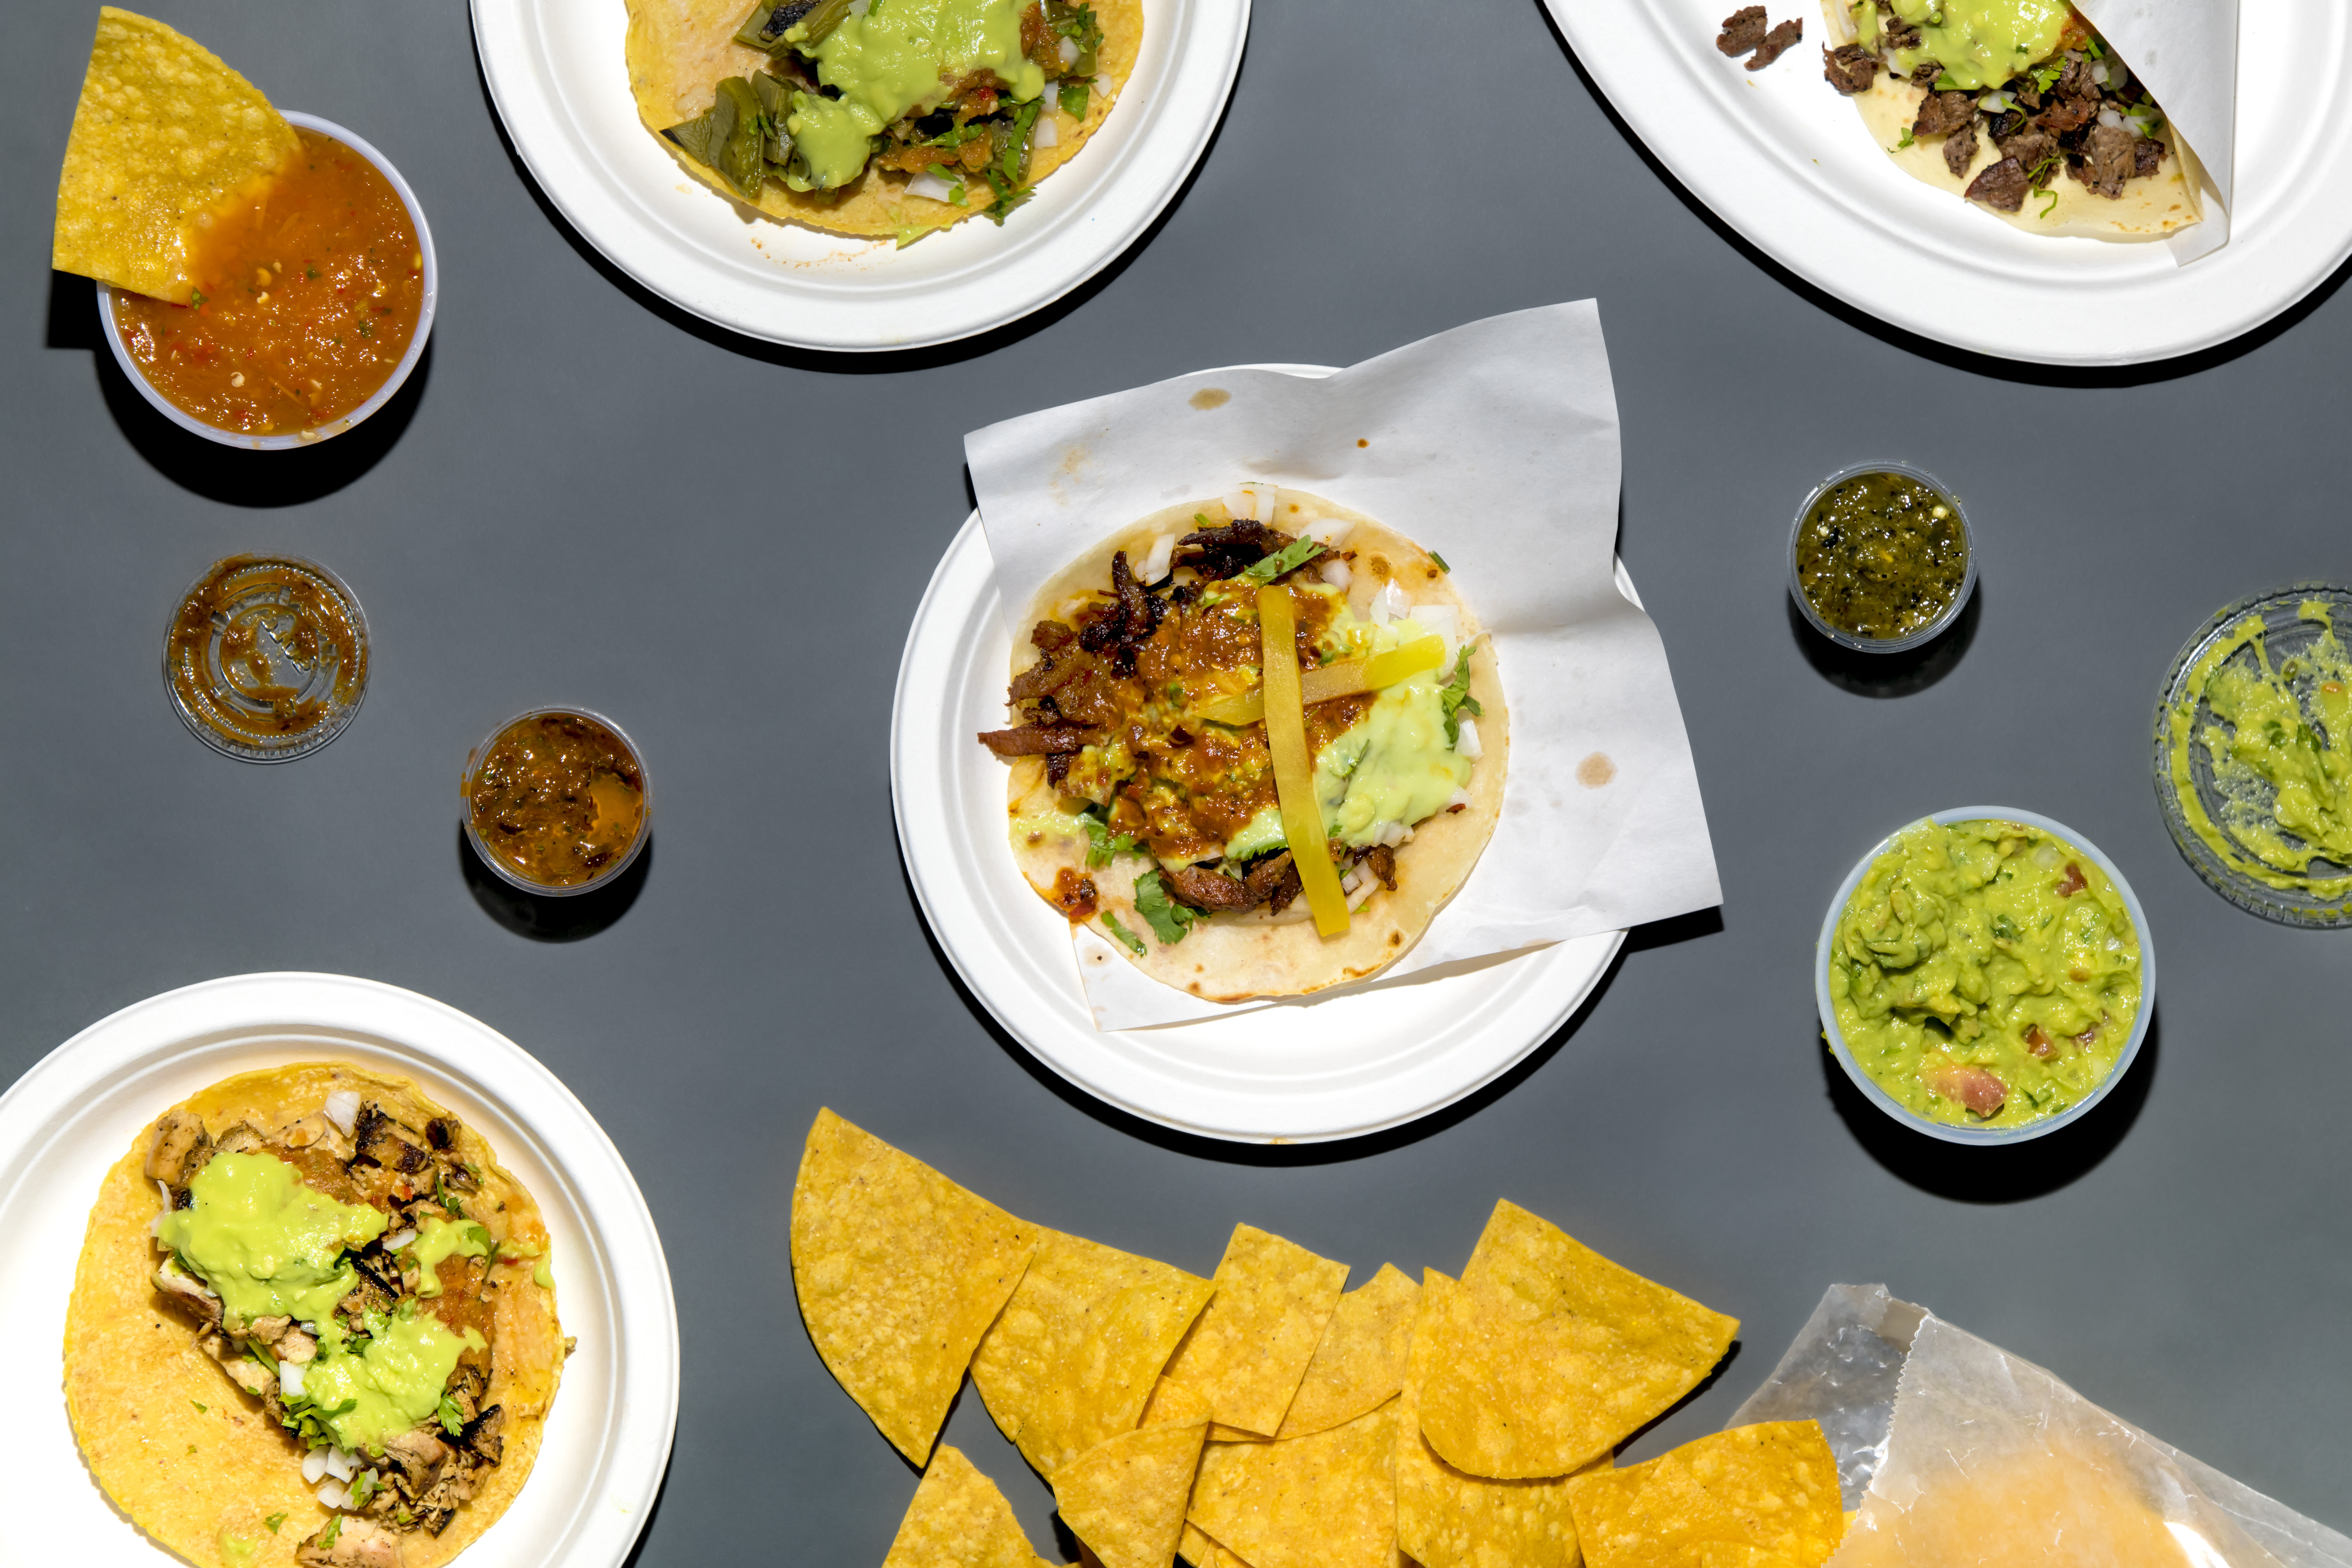 An overhead photograph of tacos, chips, guacamole, and plastic sides of salsa.